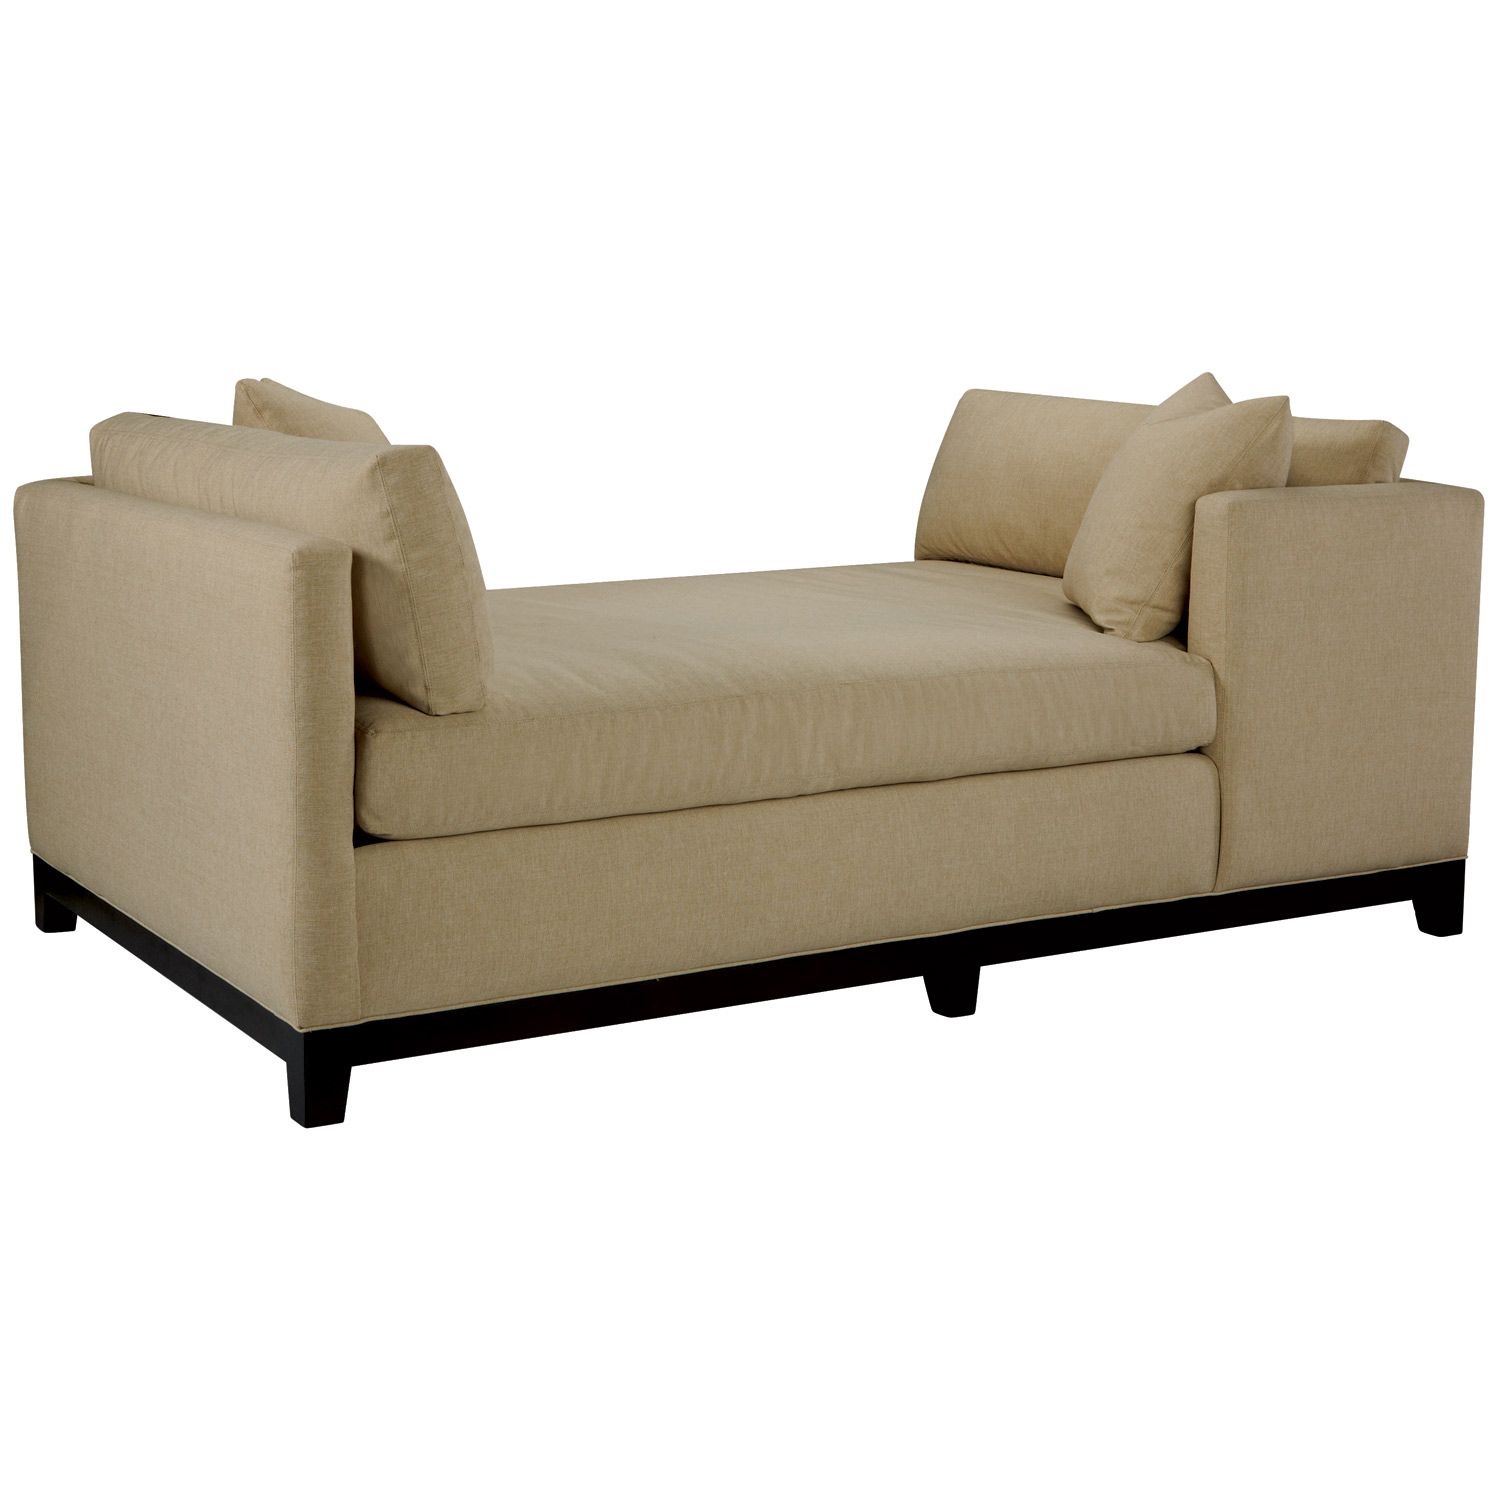 Morgan Double Chaise Zinc Door Modern Chaise Lounge Double